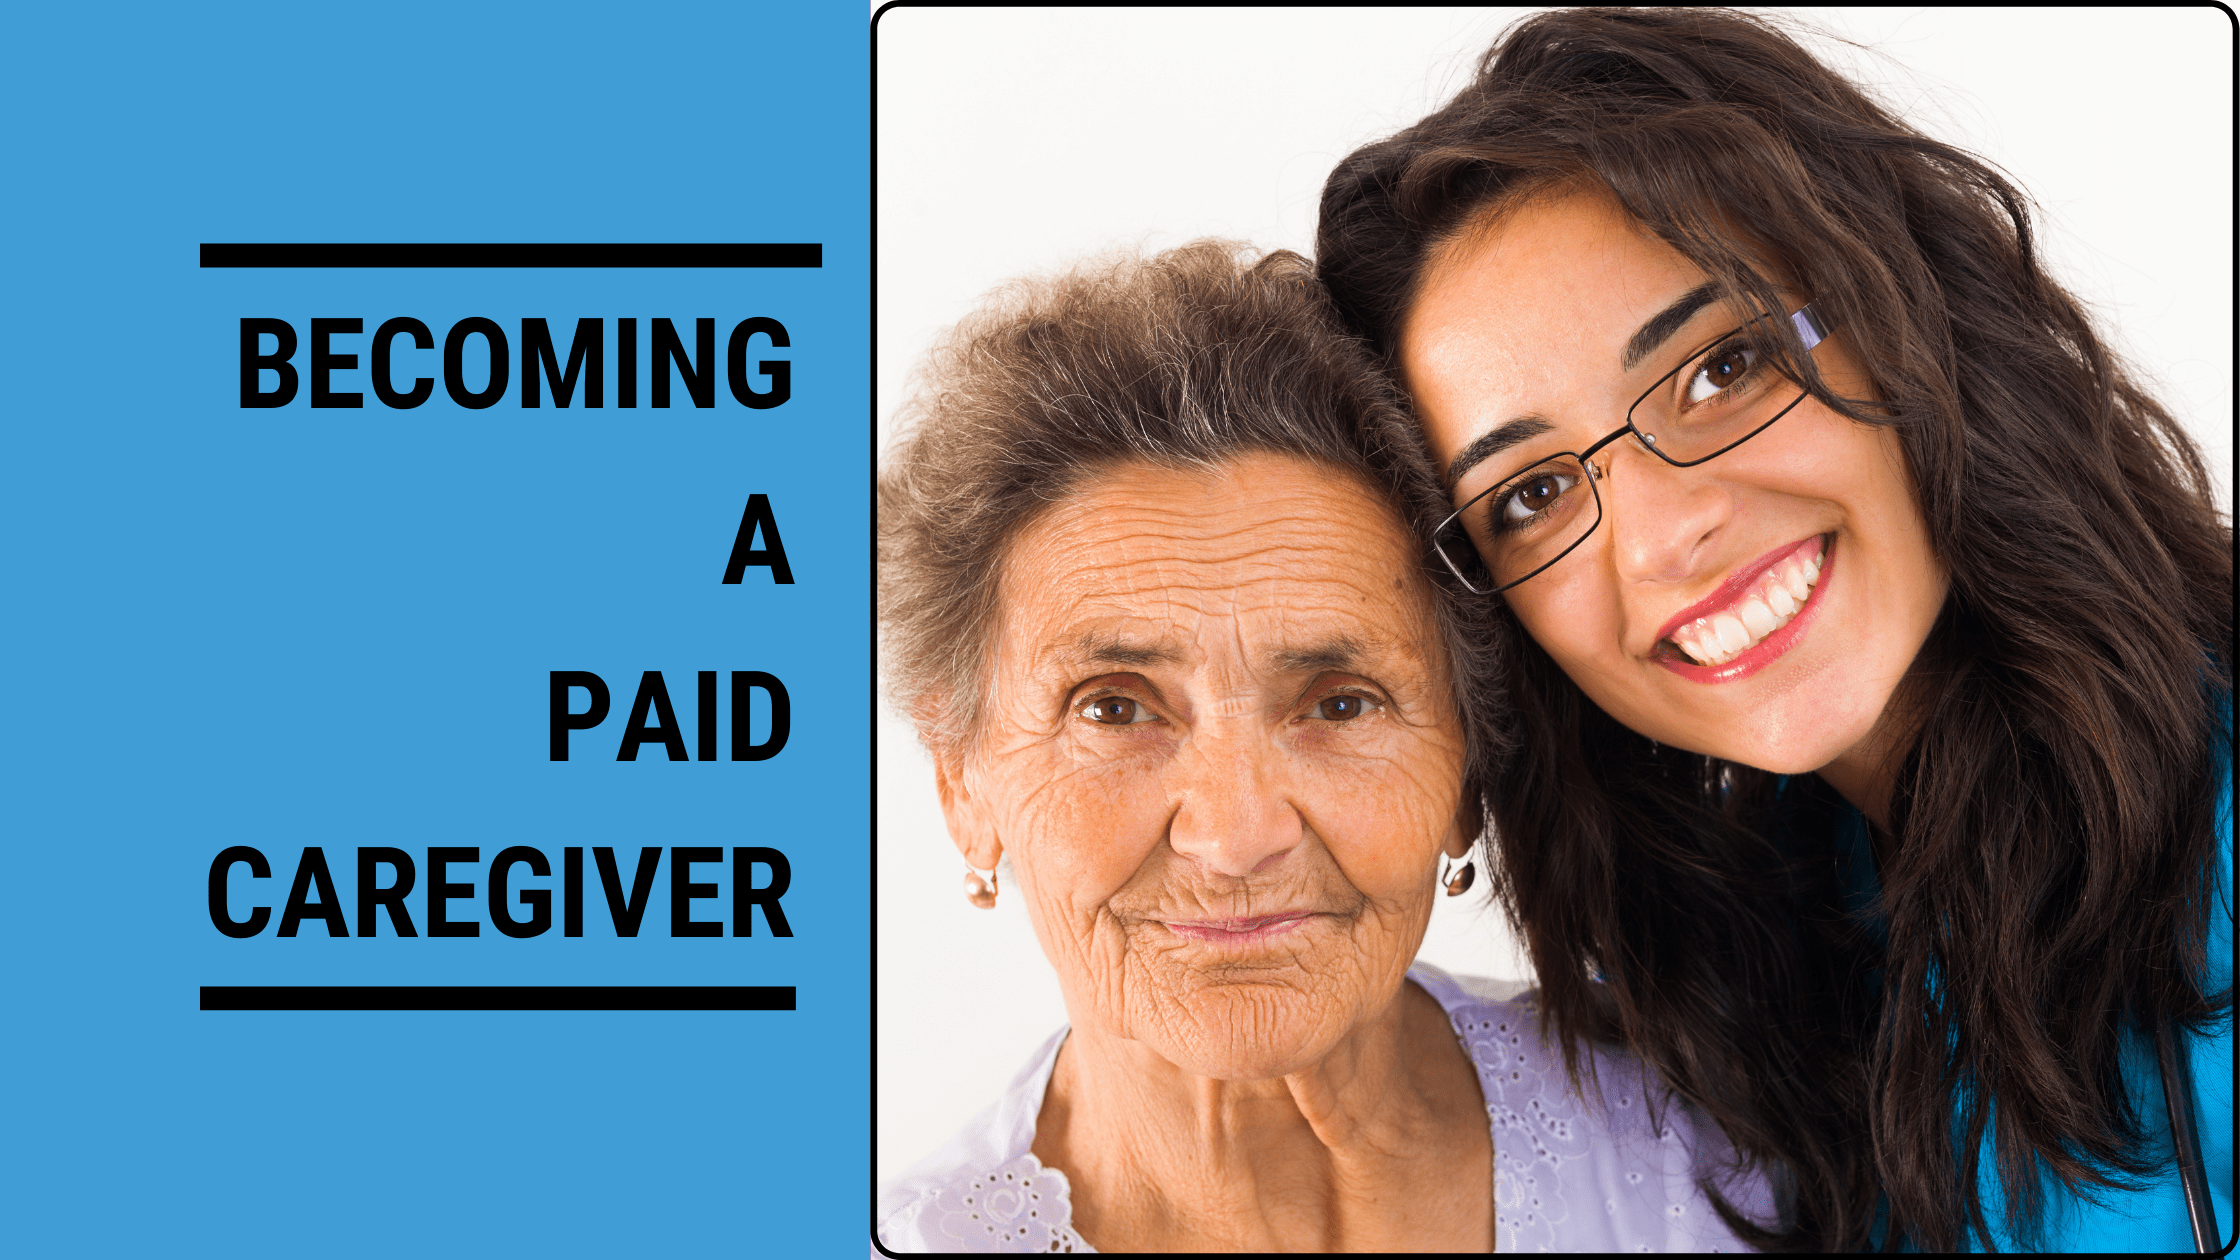 What You Need To Know About Being A Paid Caregiver